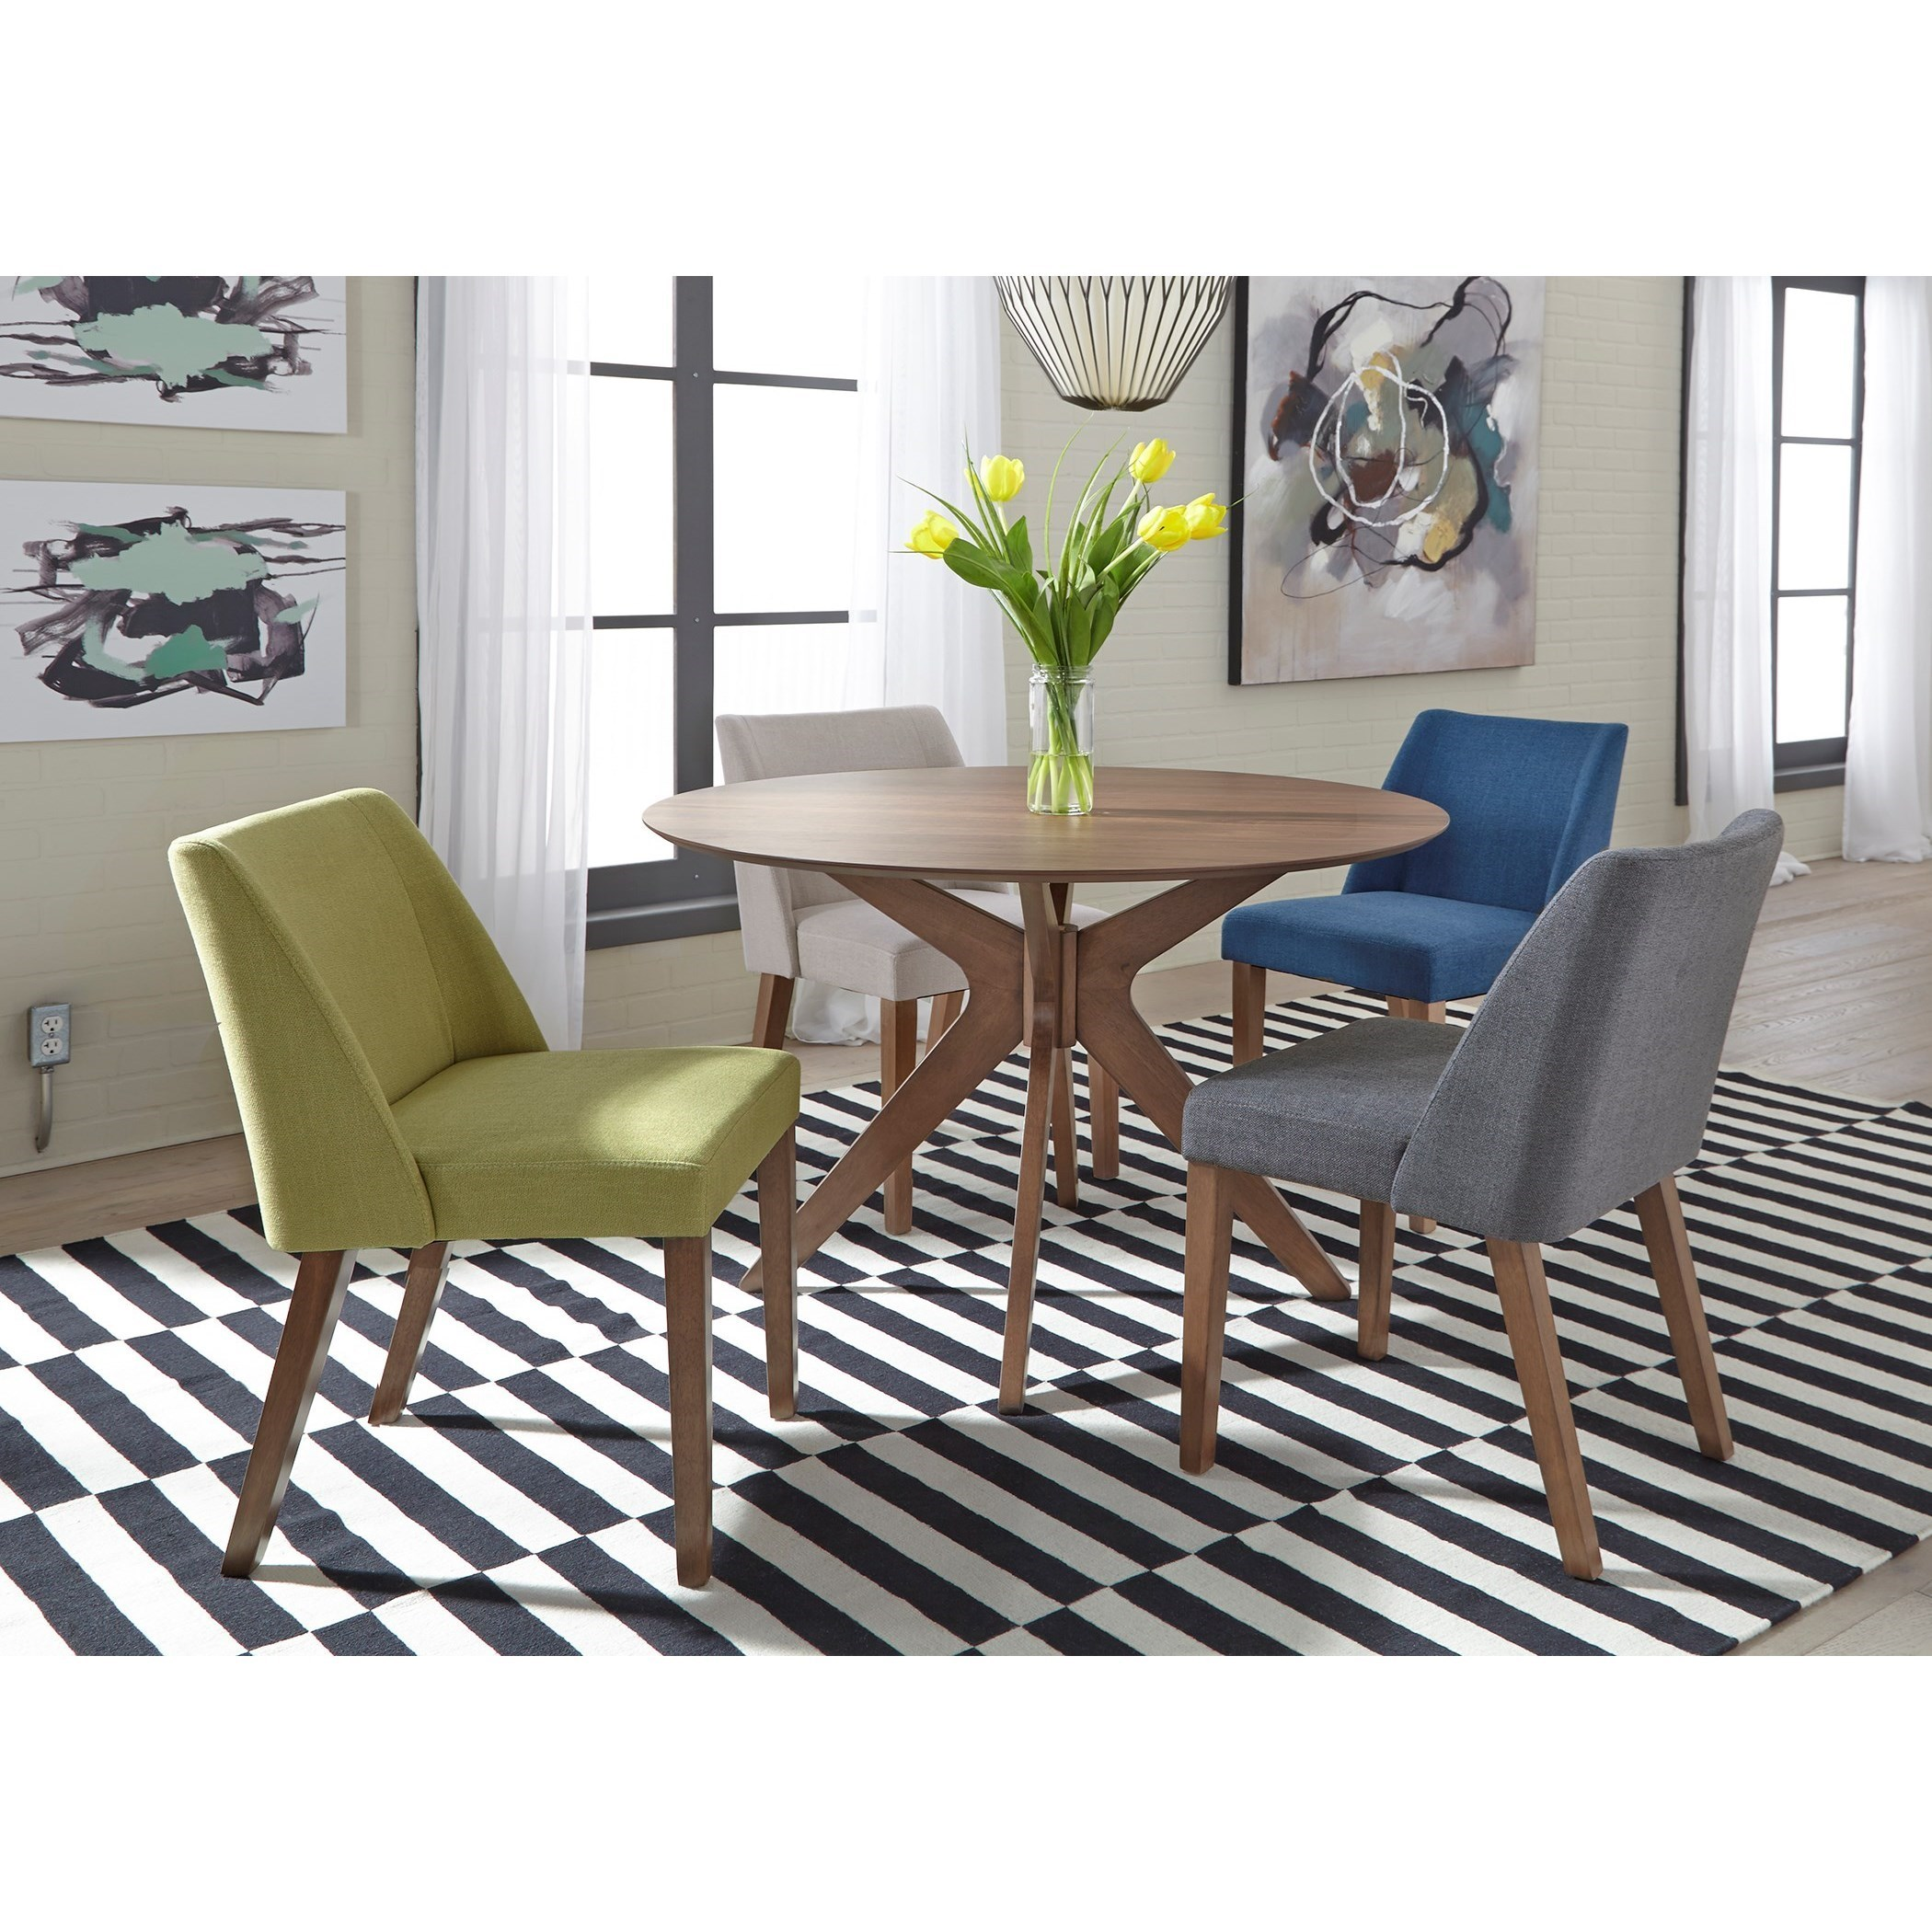 Liberty Furniture Space Savers Mid Century Modern 5 Piece Pedestal Table Set With Fully Upholstered Seating Royal Furniture Dining 5 Piece Sets